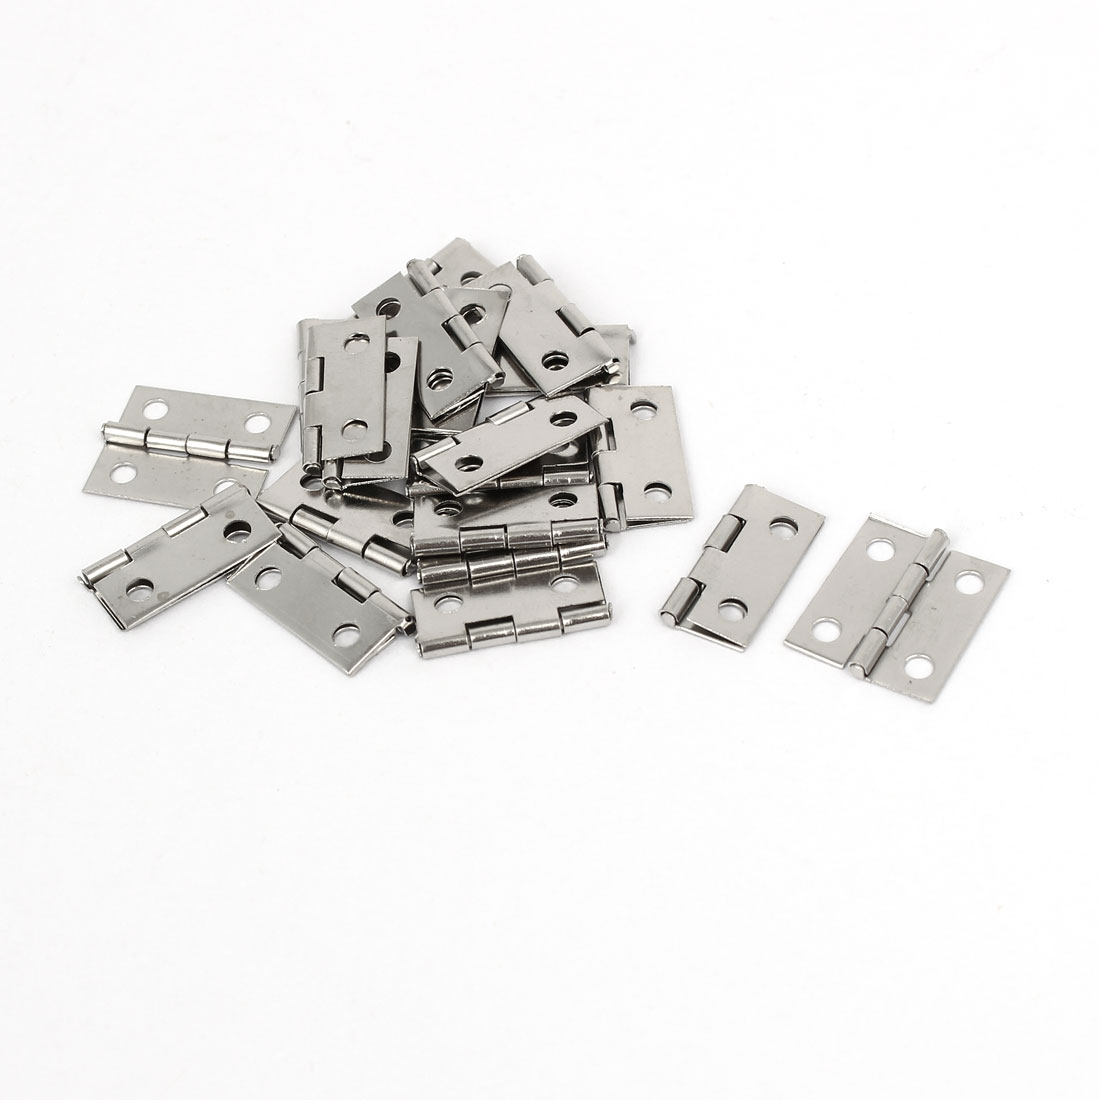 Jewelry Box Case Door Foldable Butt Hinges Silver Tone 18mm Length 20PCS